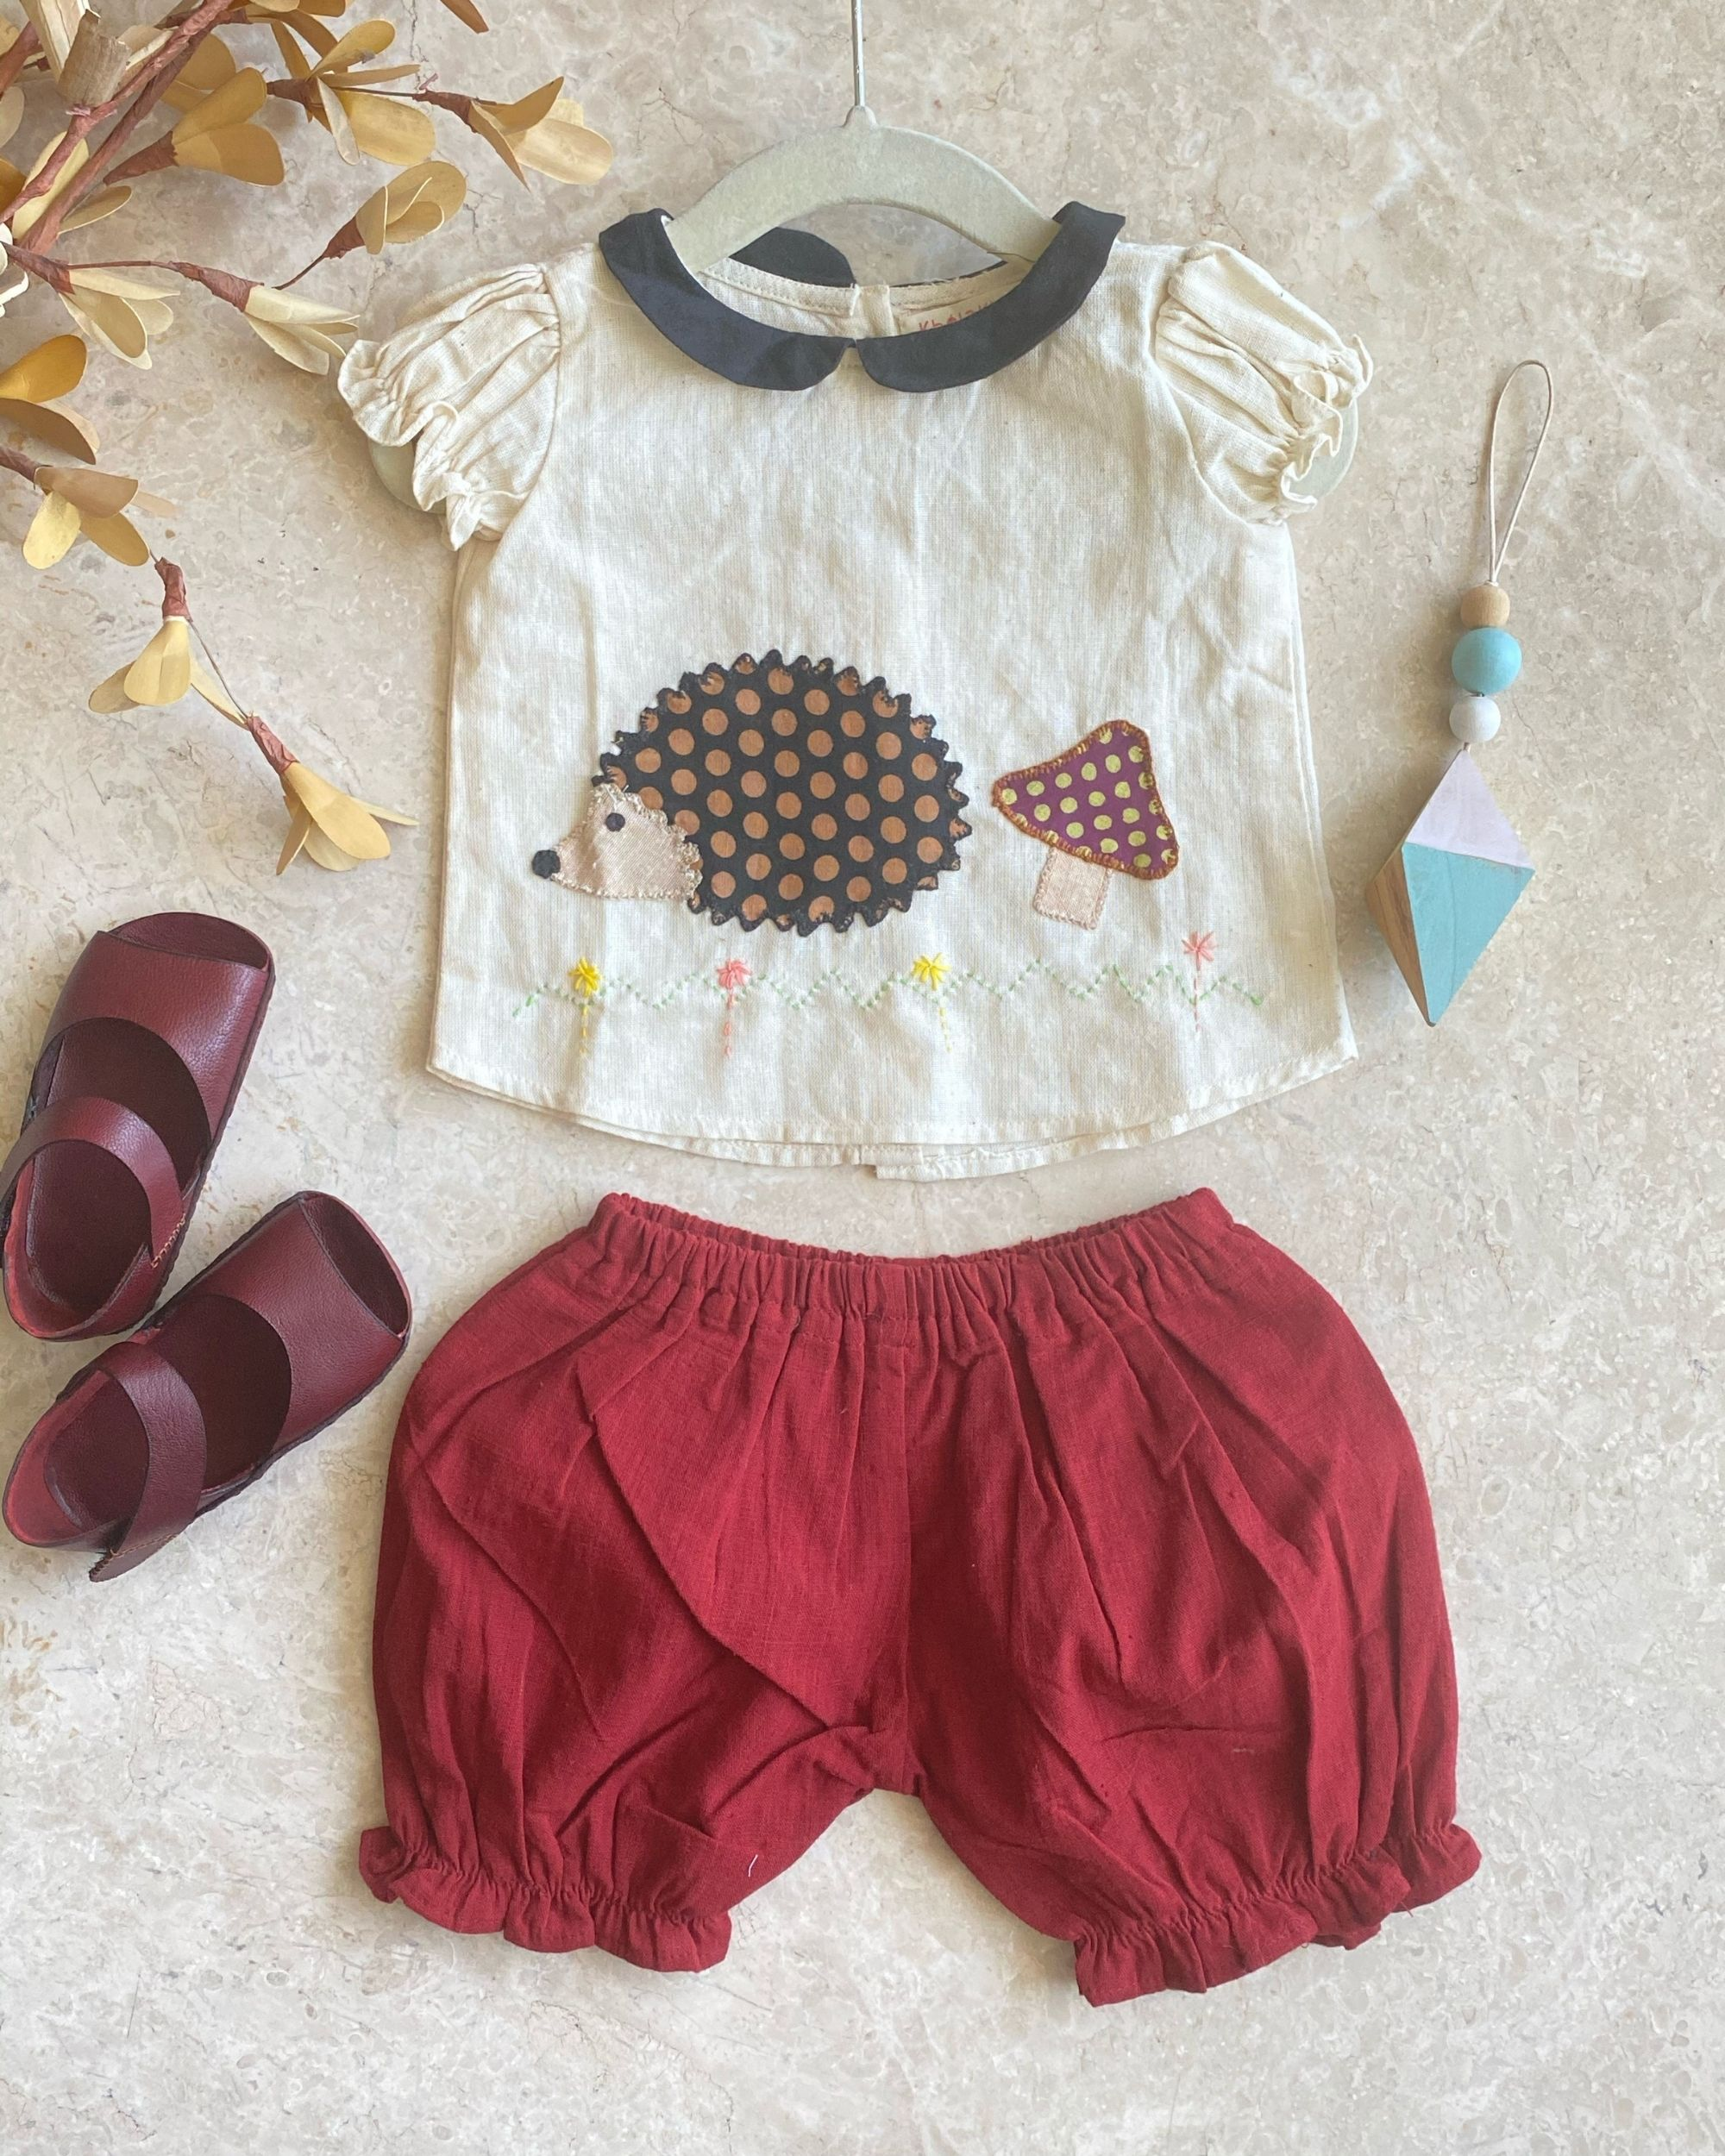 Off white hedgehog top with red knickers - set of two